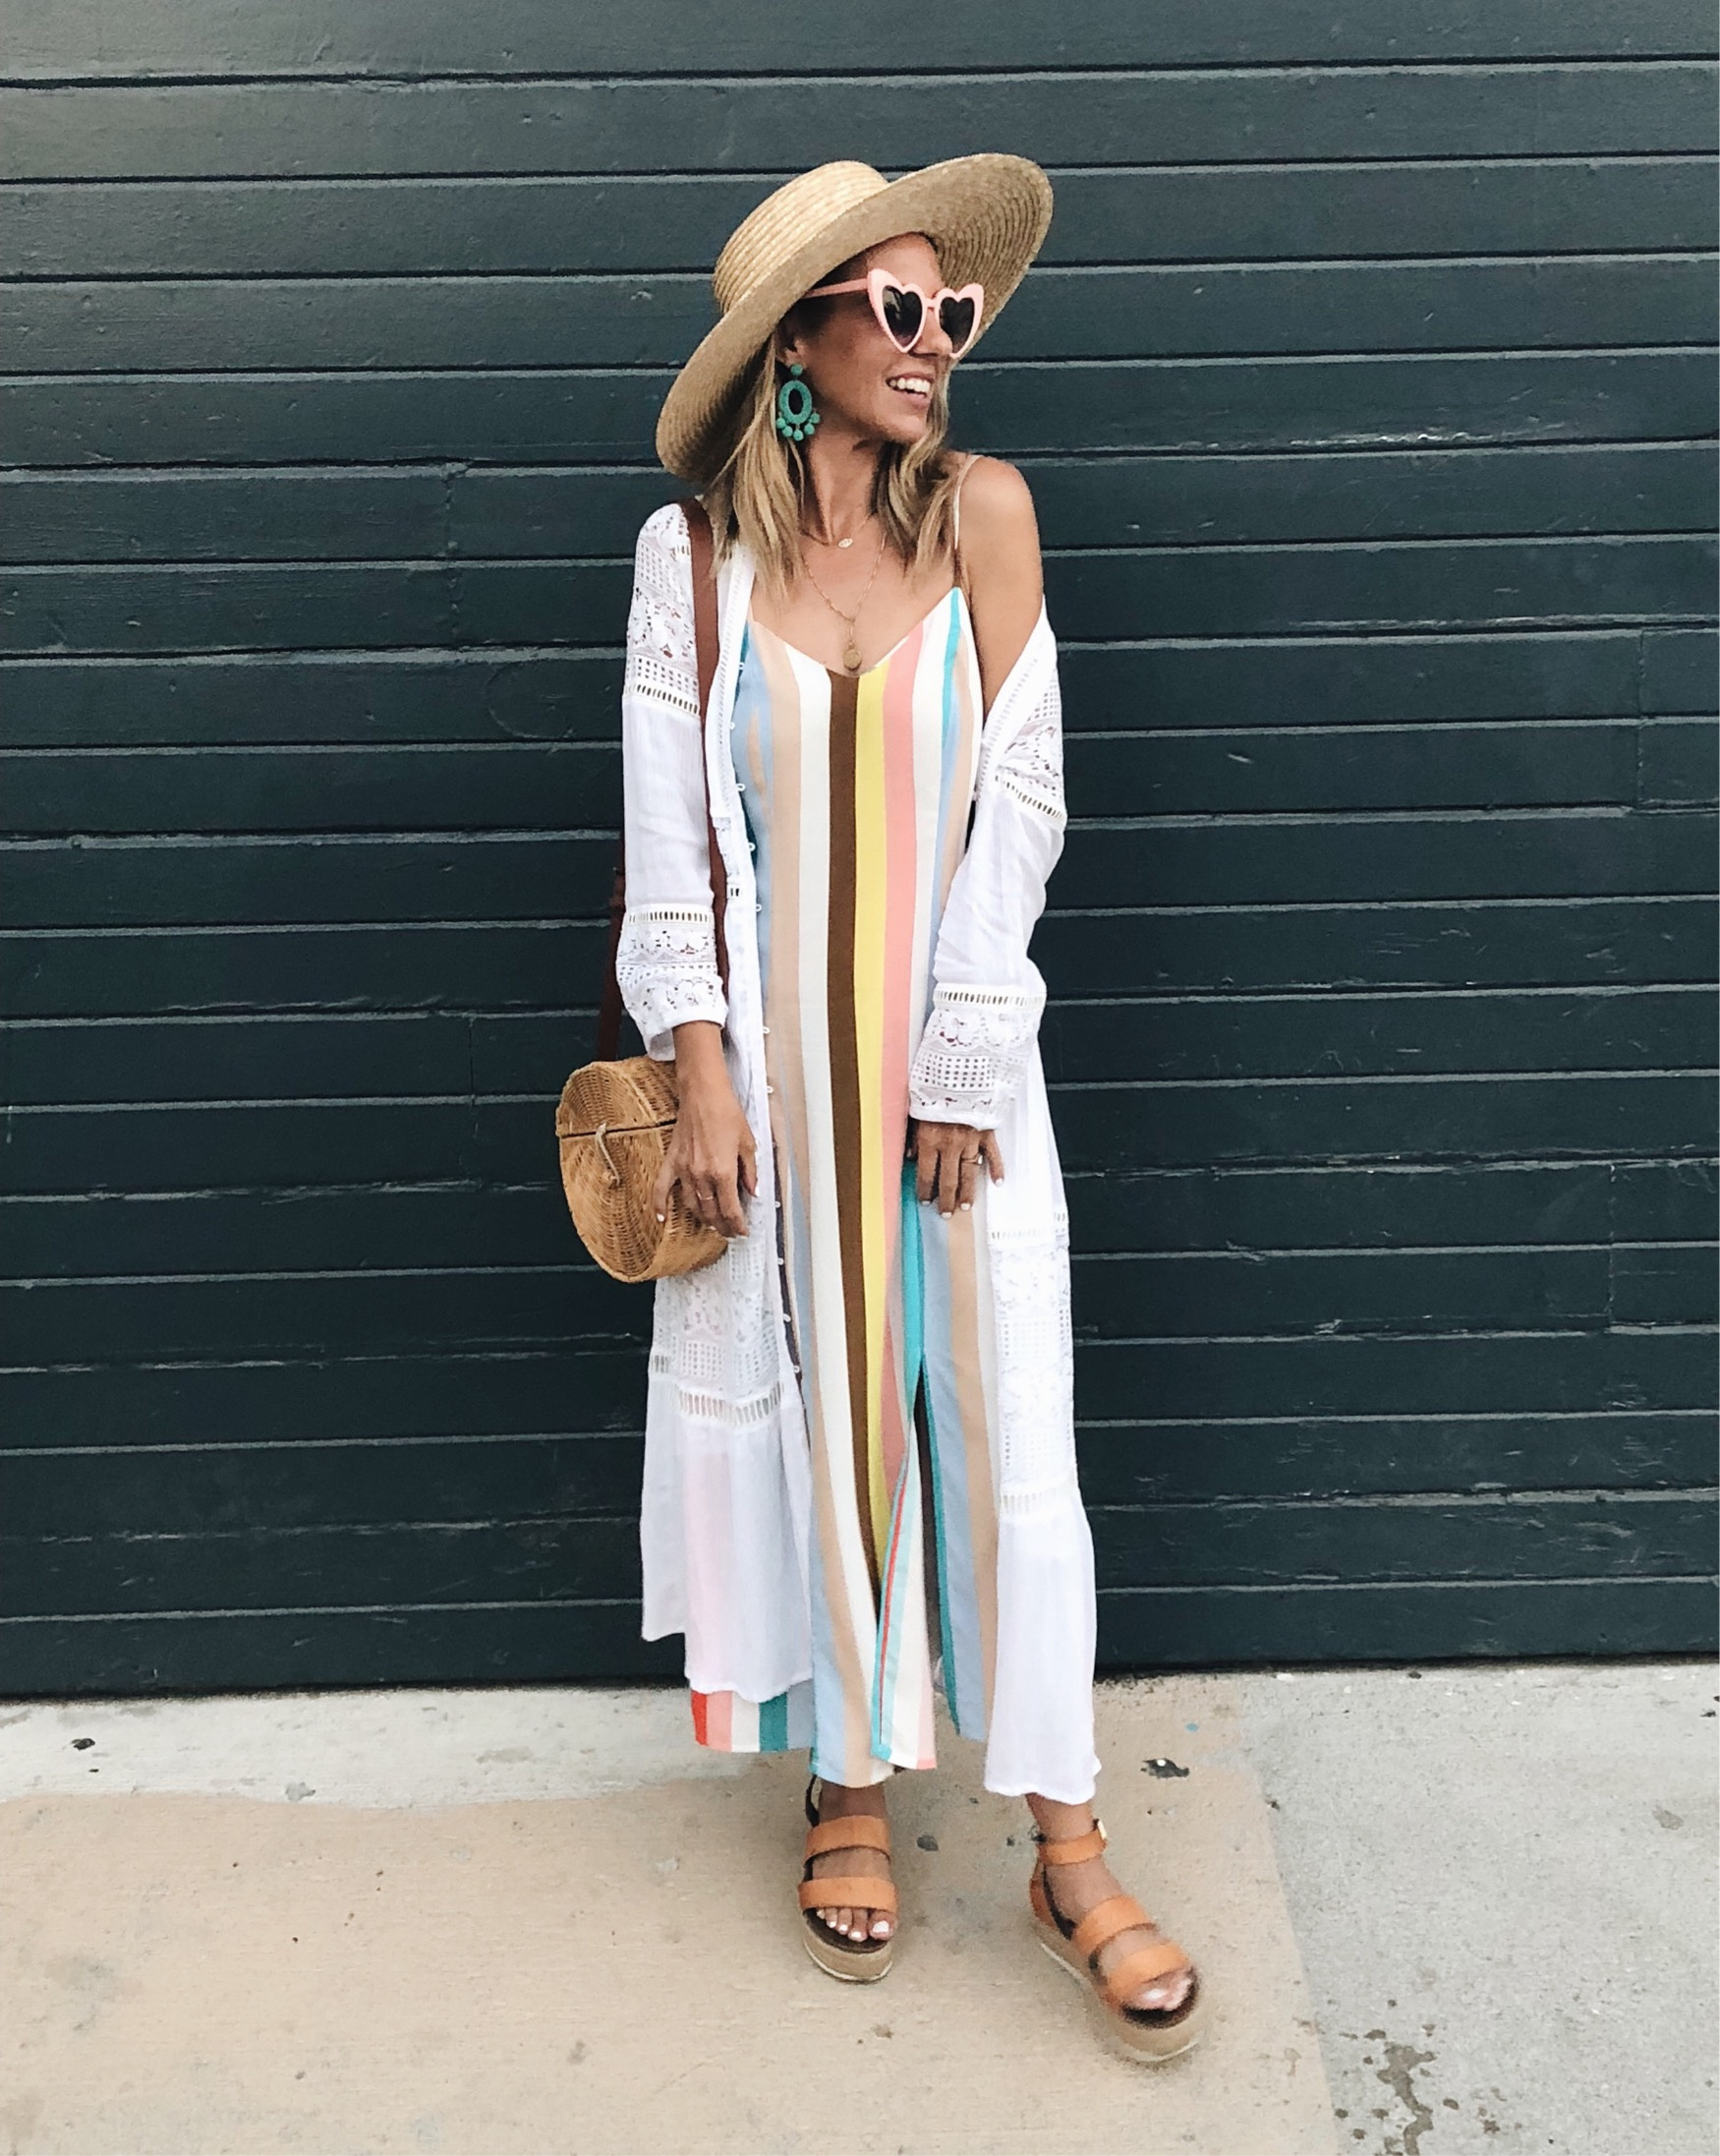 MUST HAVE SUMMER MAXI DRESSES- Jaclyn De Leon Style + striped maxi dress + boho chic + bohemian summer stye + straw hat + retro heart sunglasses + Target Style + casual beach style + street style + Goodnight Macaroon + white lace kimono + platform sandals